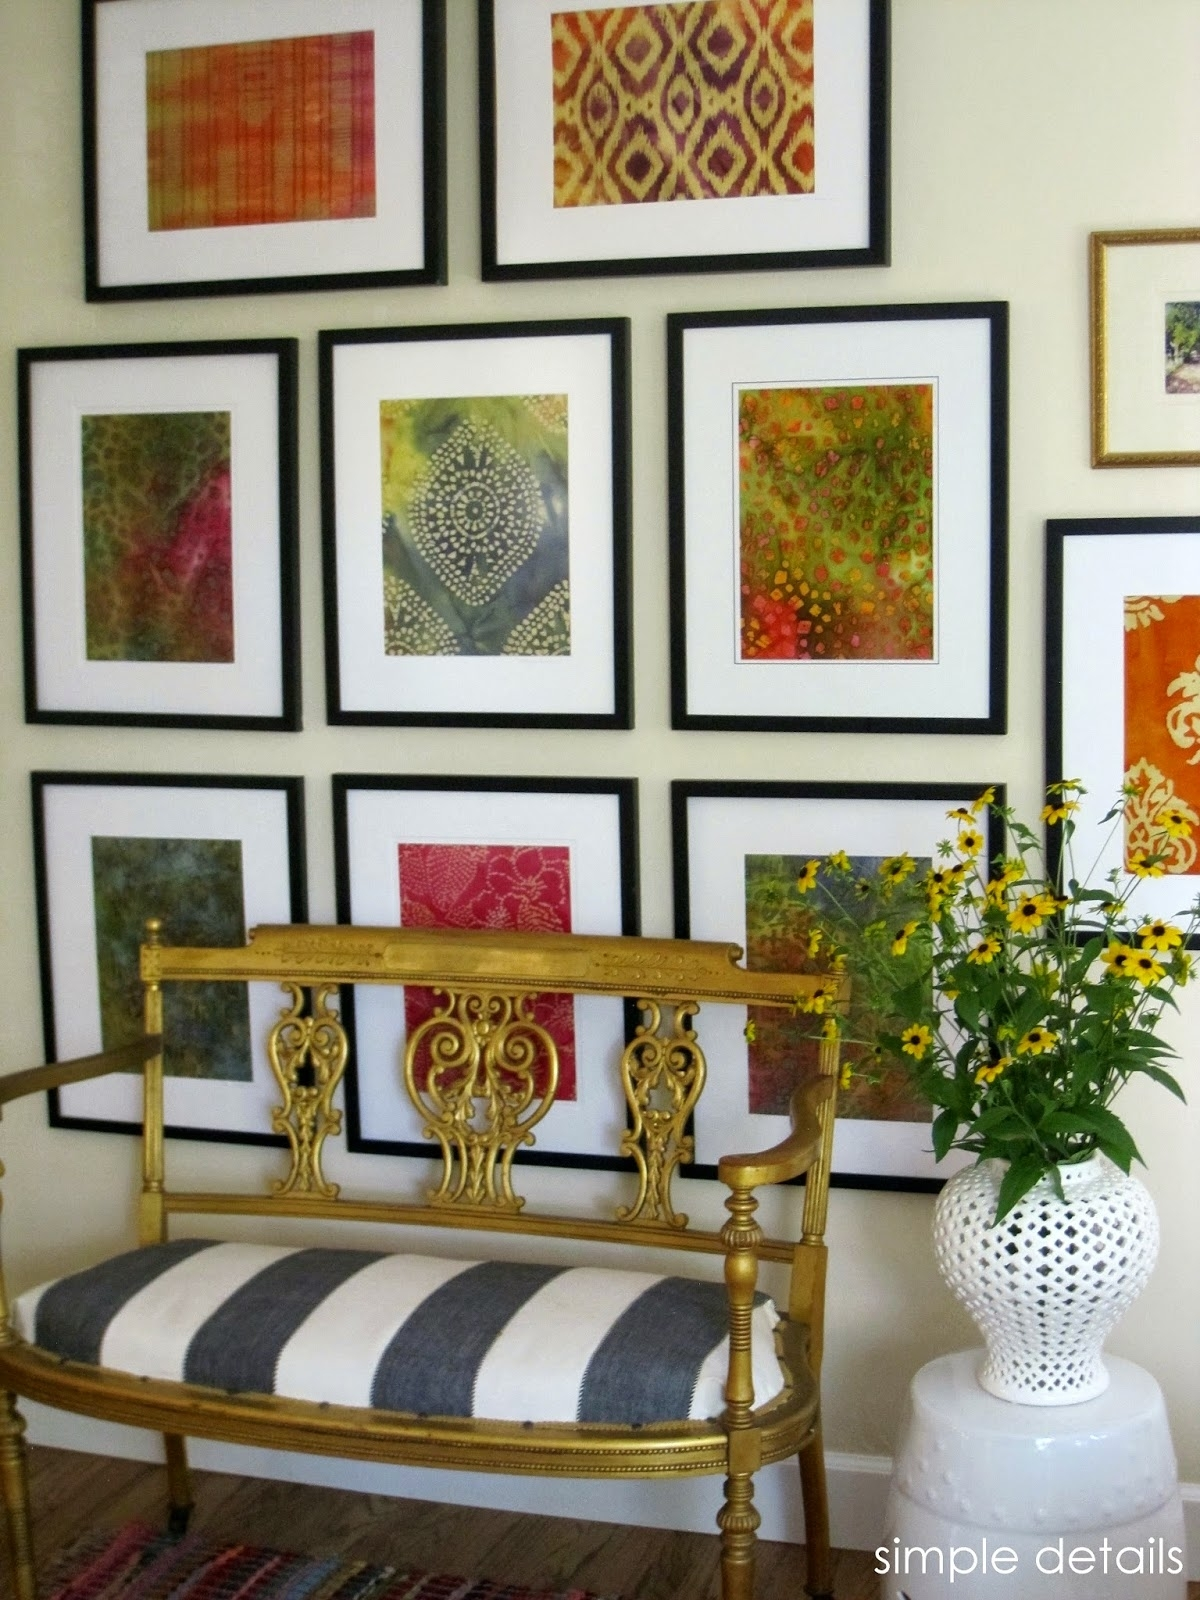 Simple Details: Diy Framed Batik Fabric Eclectic And Regarding 2018 Simple Fabric Wall Art (View 8 of 15)